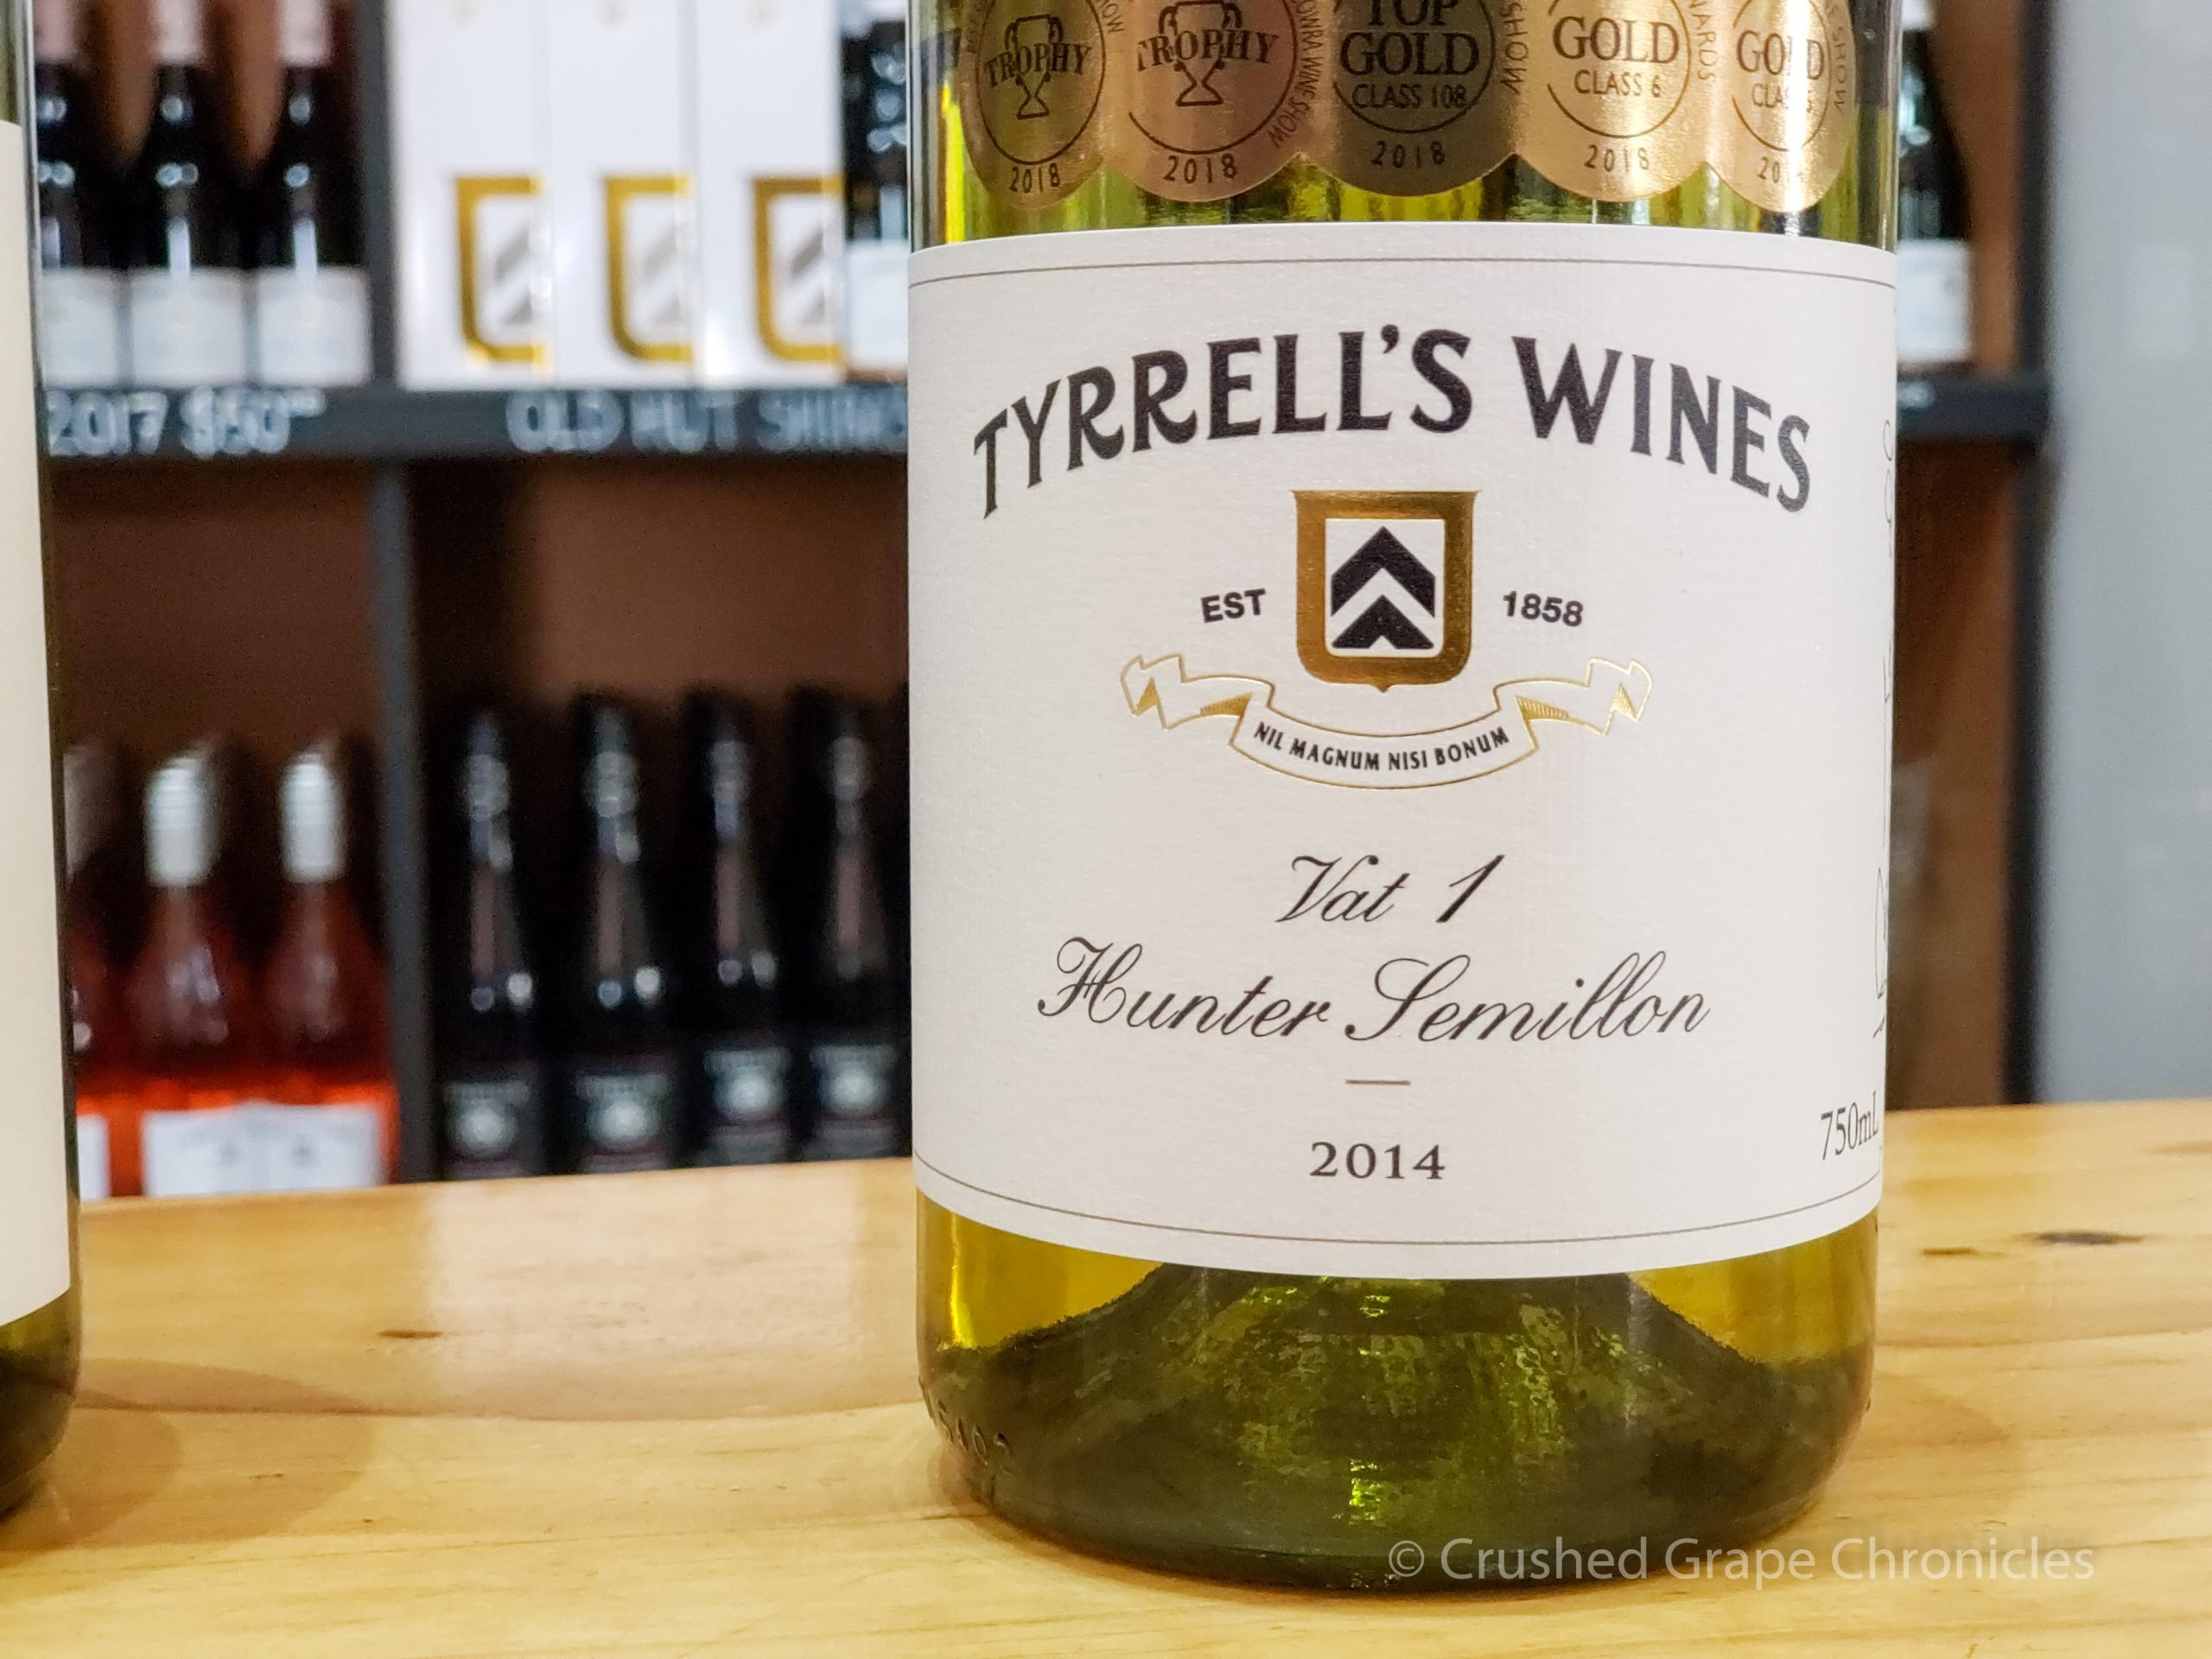 Tyrrell's Winery in Hunter Valley Australia Vat 1 Semillon